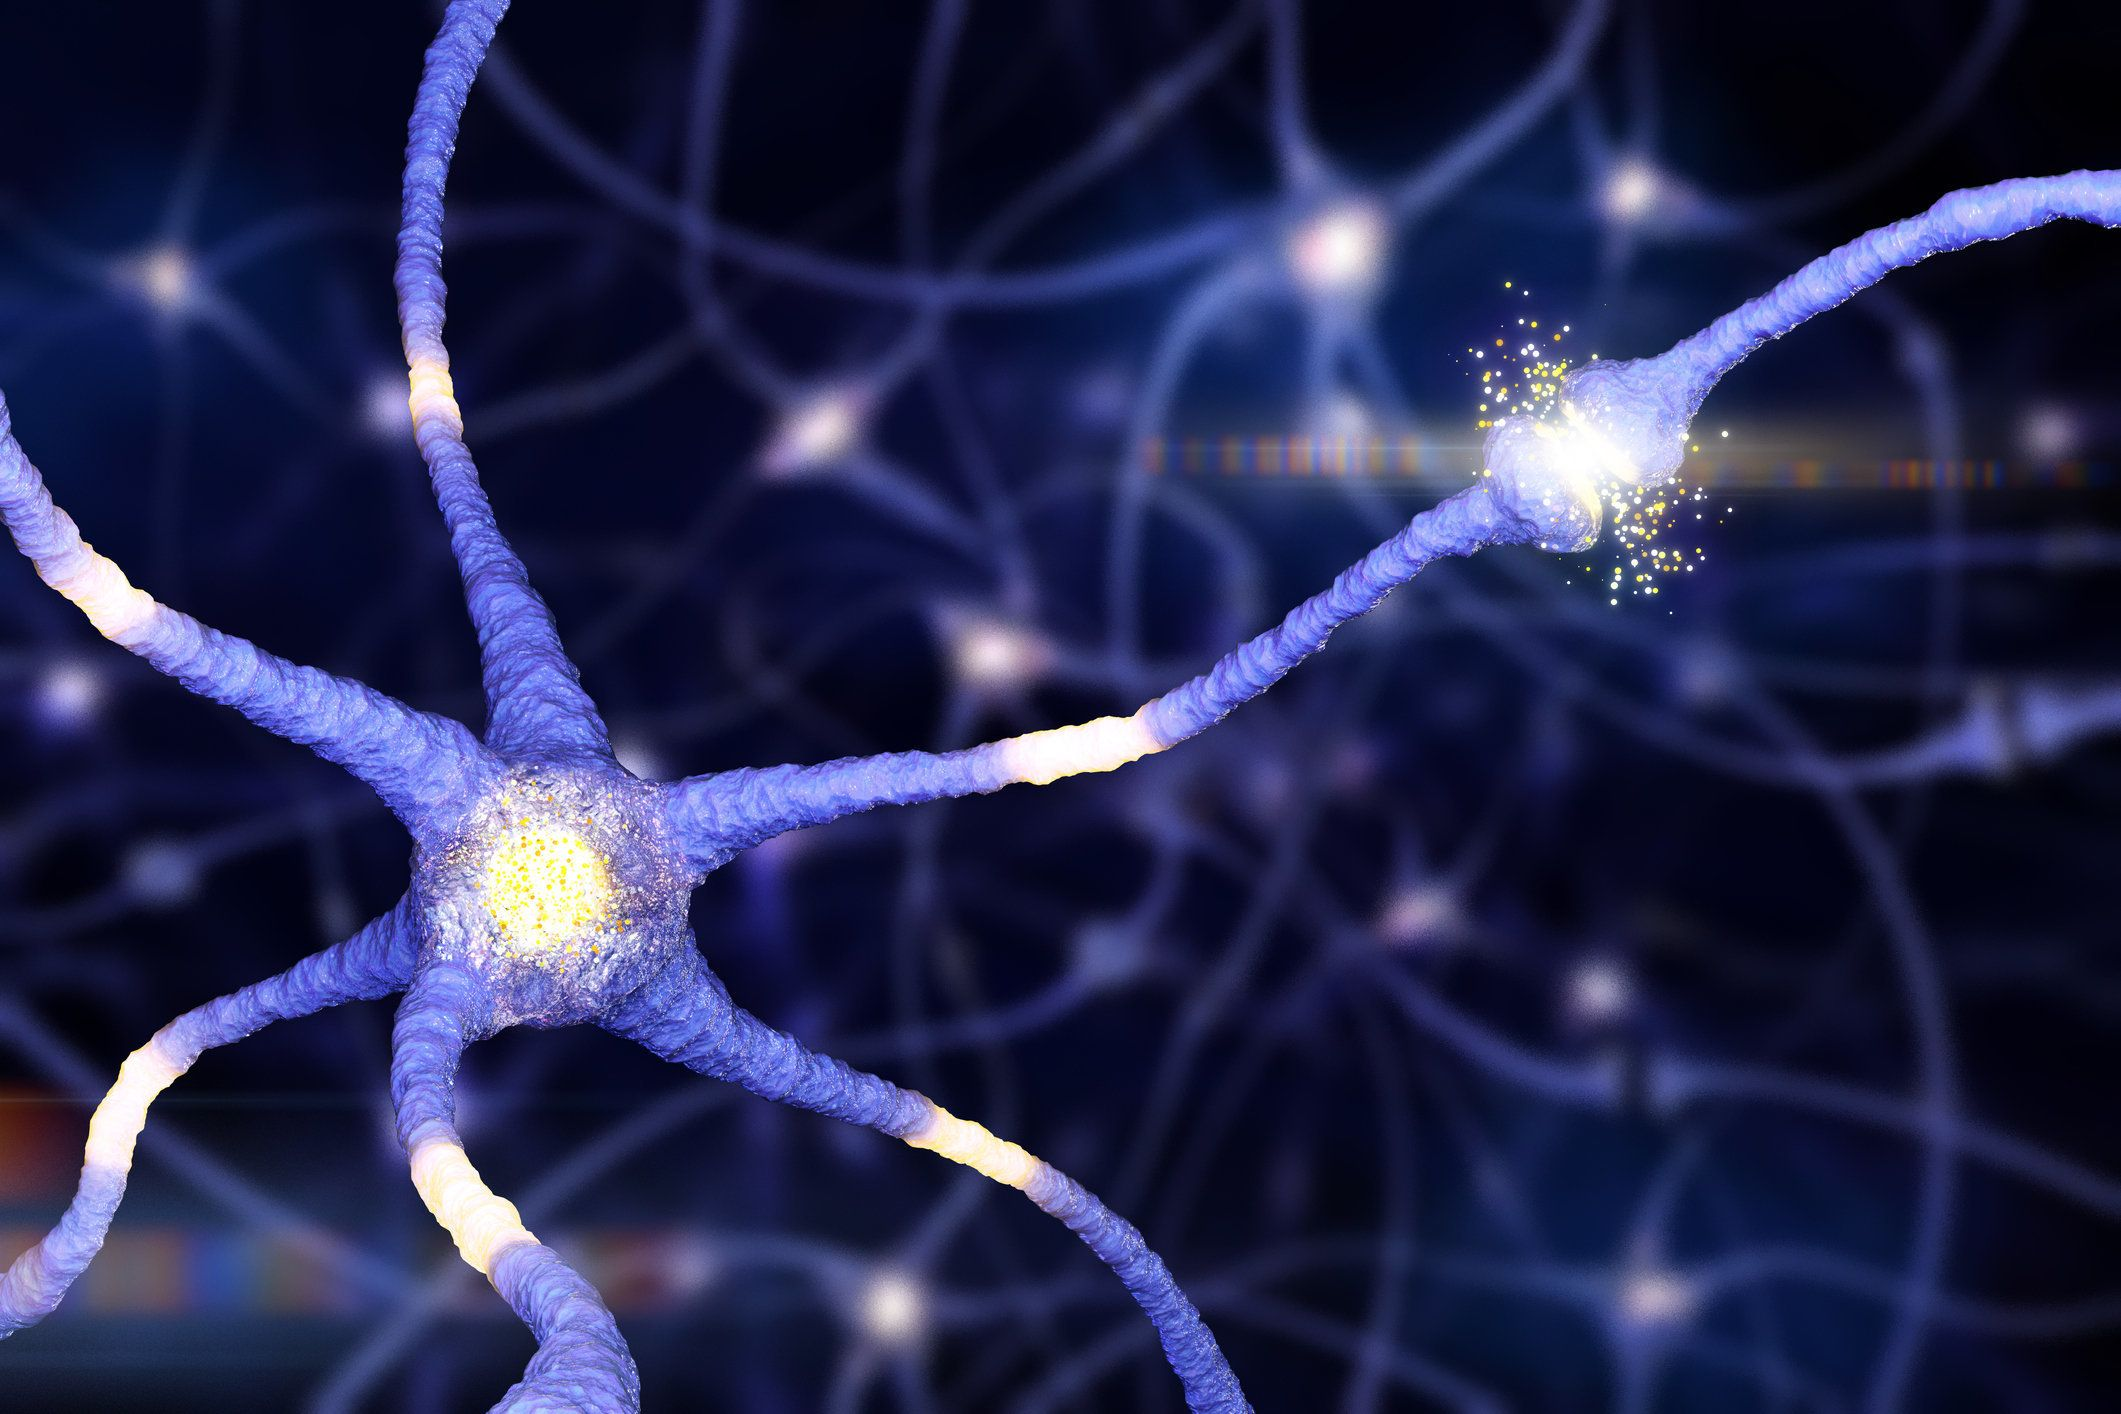 Neuron (or nerve cell) sending electrical and chemical signals to synapse connections.